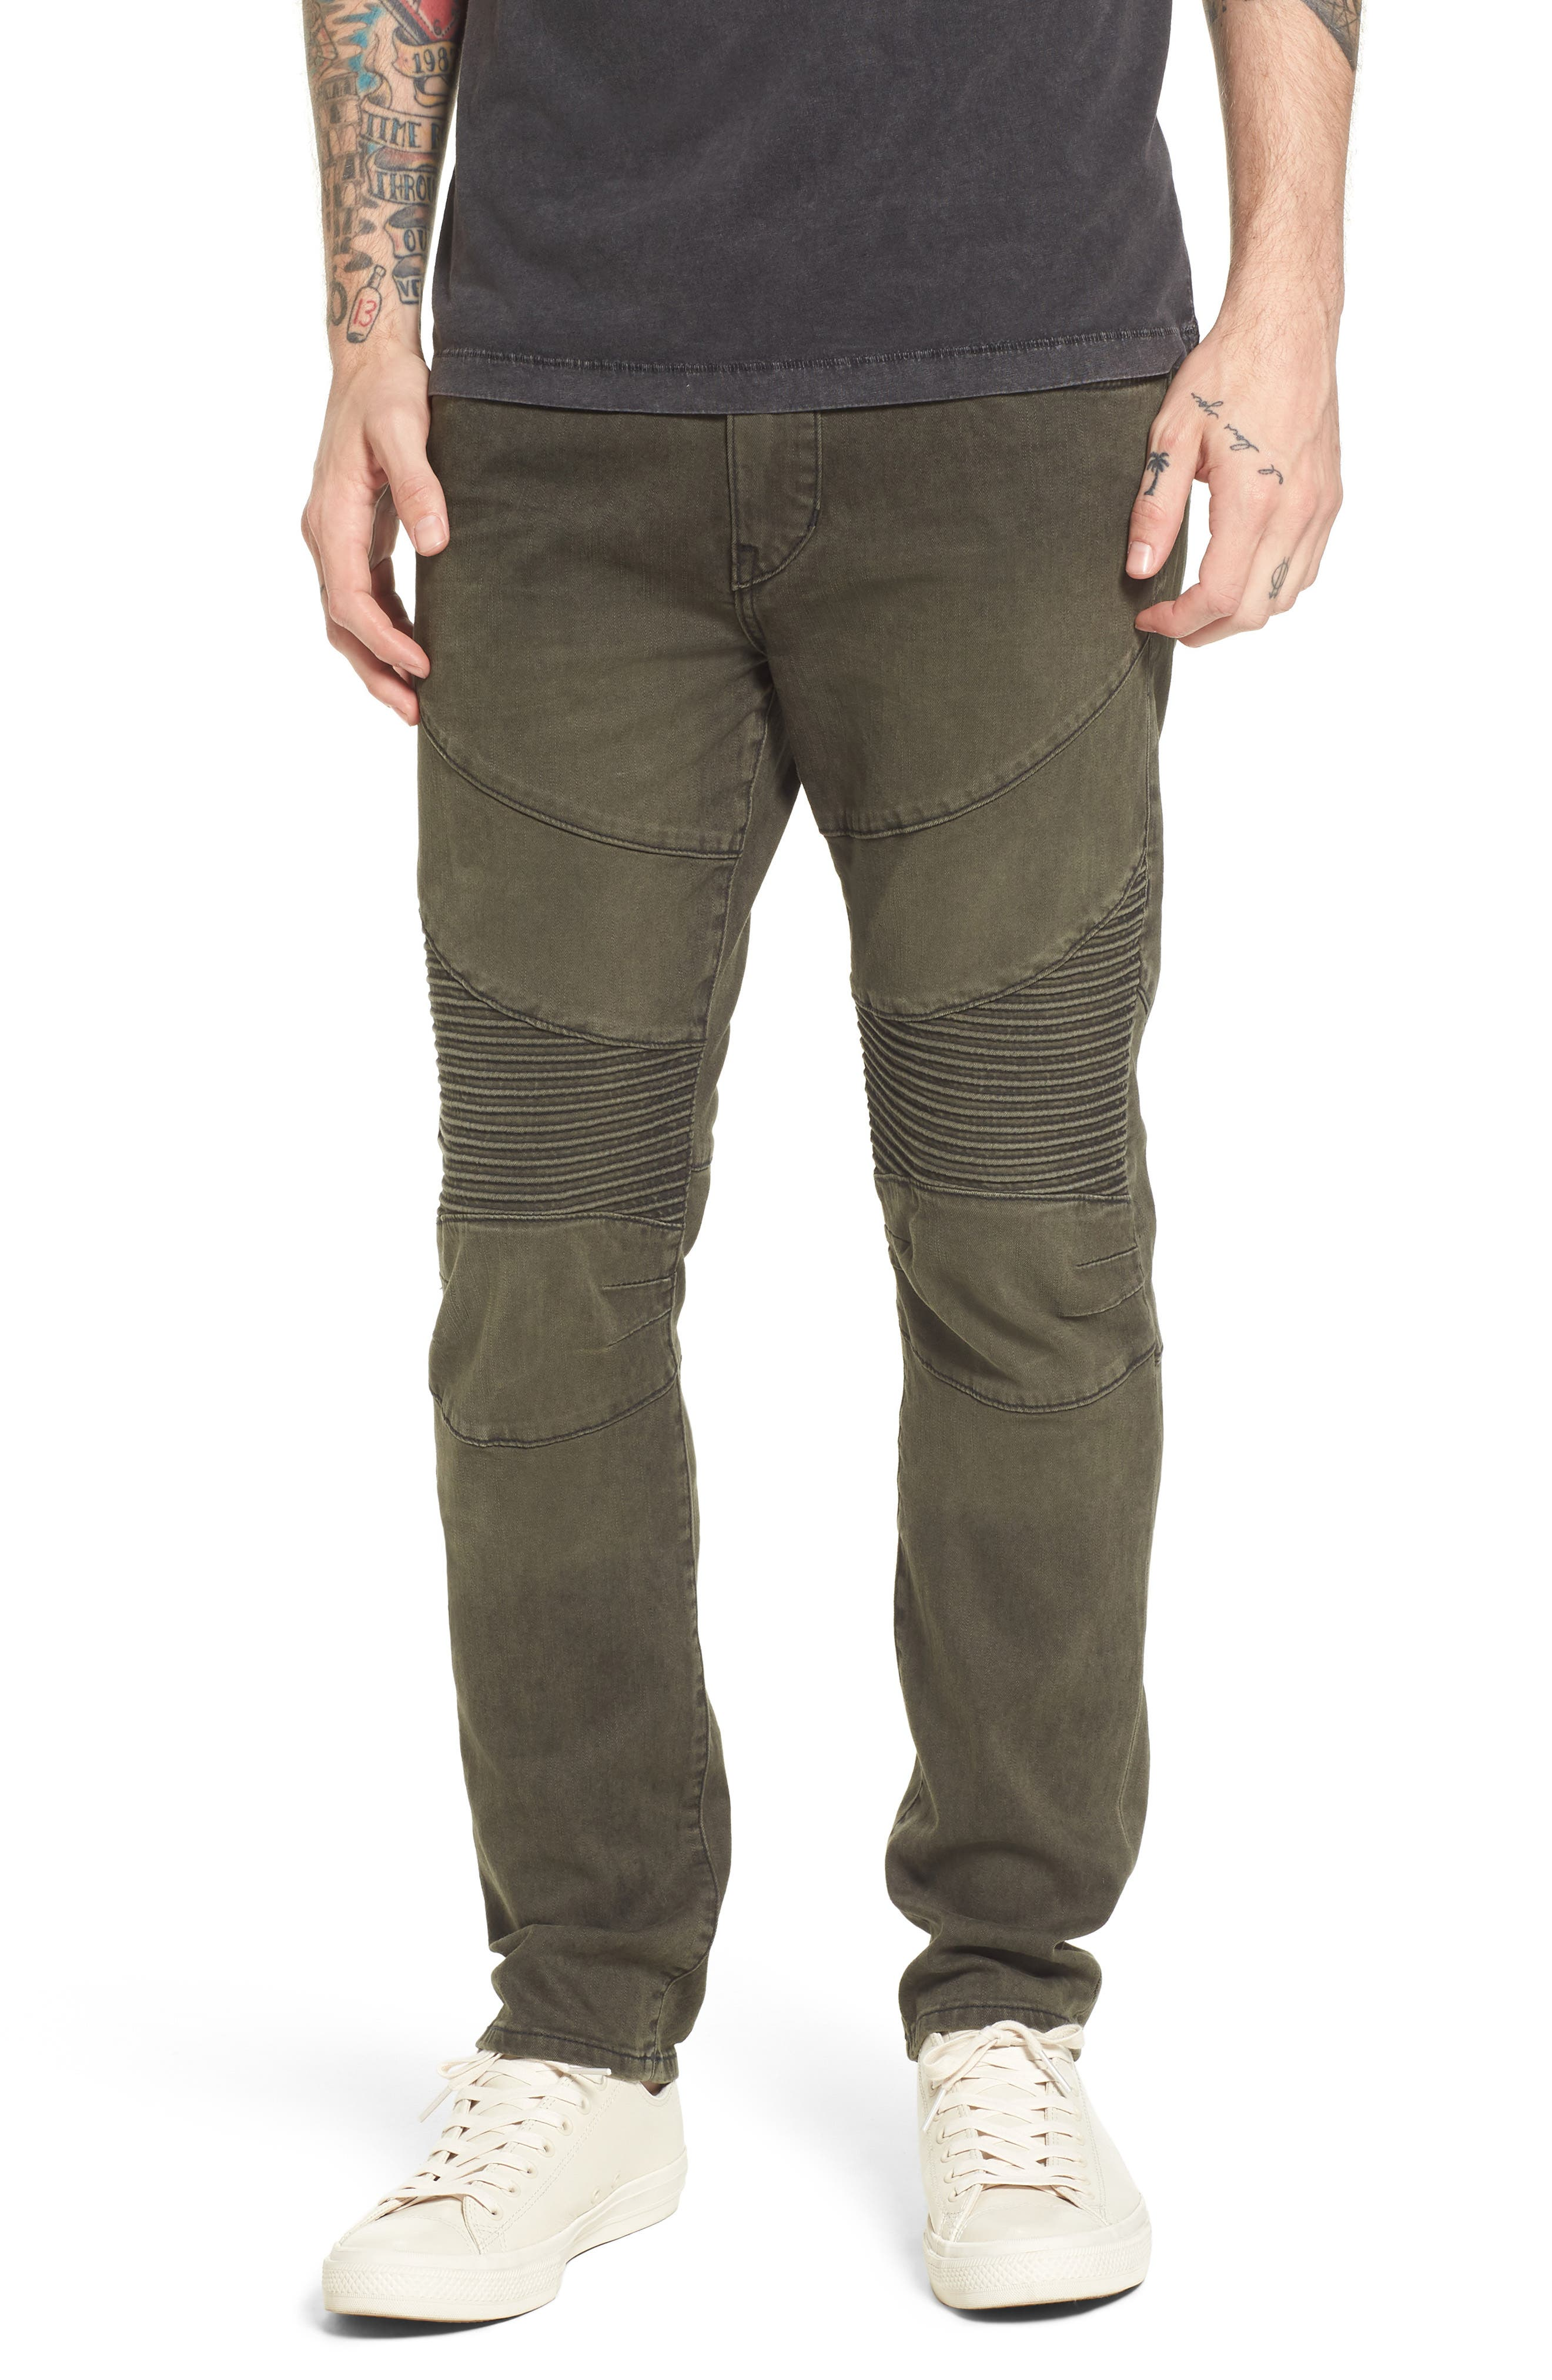 Rocco Skinny Fit Jeans,                         Main,                         color, Coated Olive